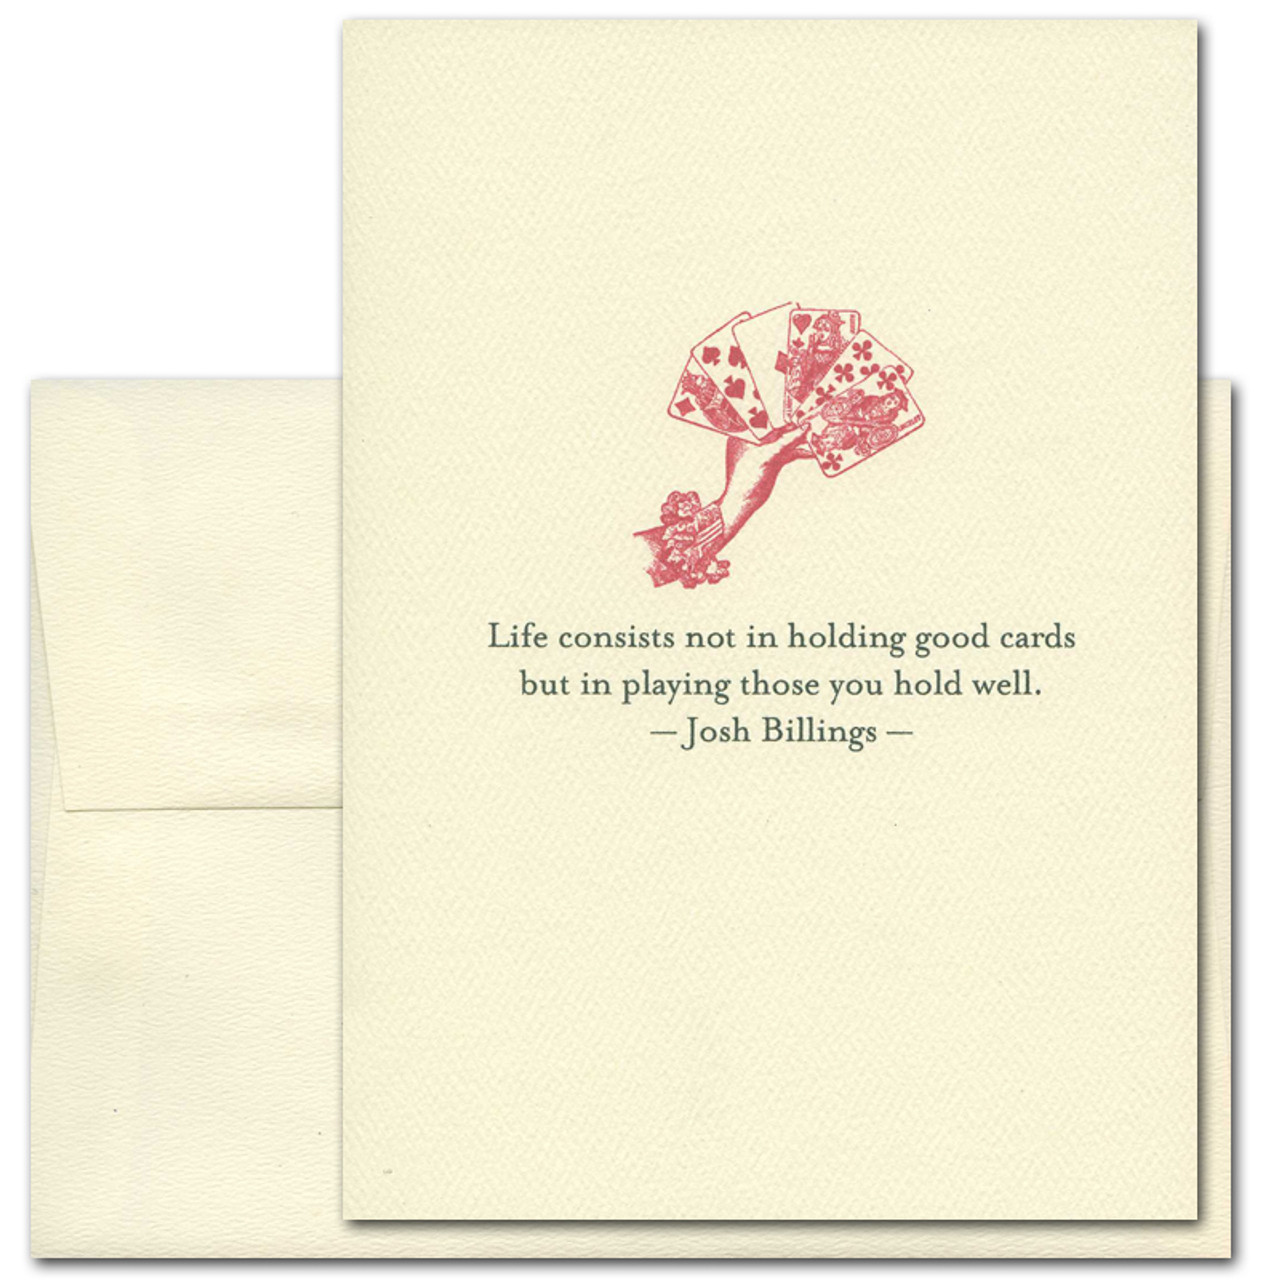 "Quotation Card ""Good Cards: Billings"" Cover shows a red  vintage illustration of a hand holding cards with a quote by Josh Billings that reads: ""Life consists not in holding good cards but in playing those you hold well."""